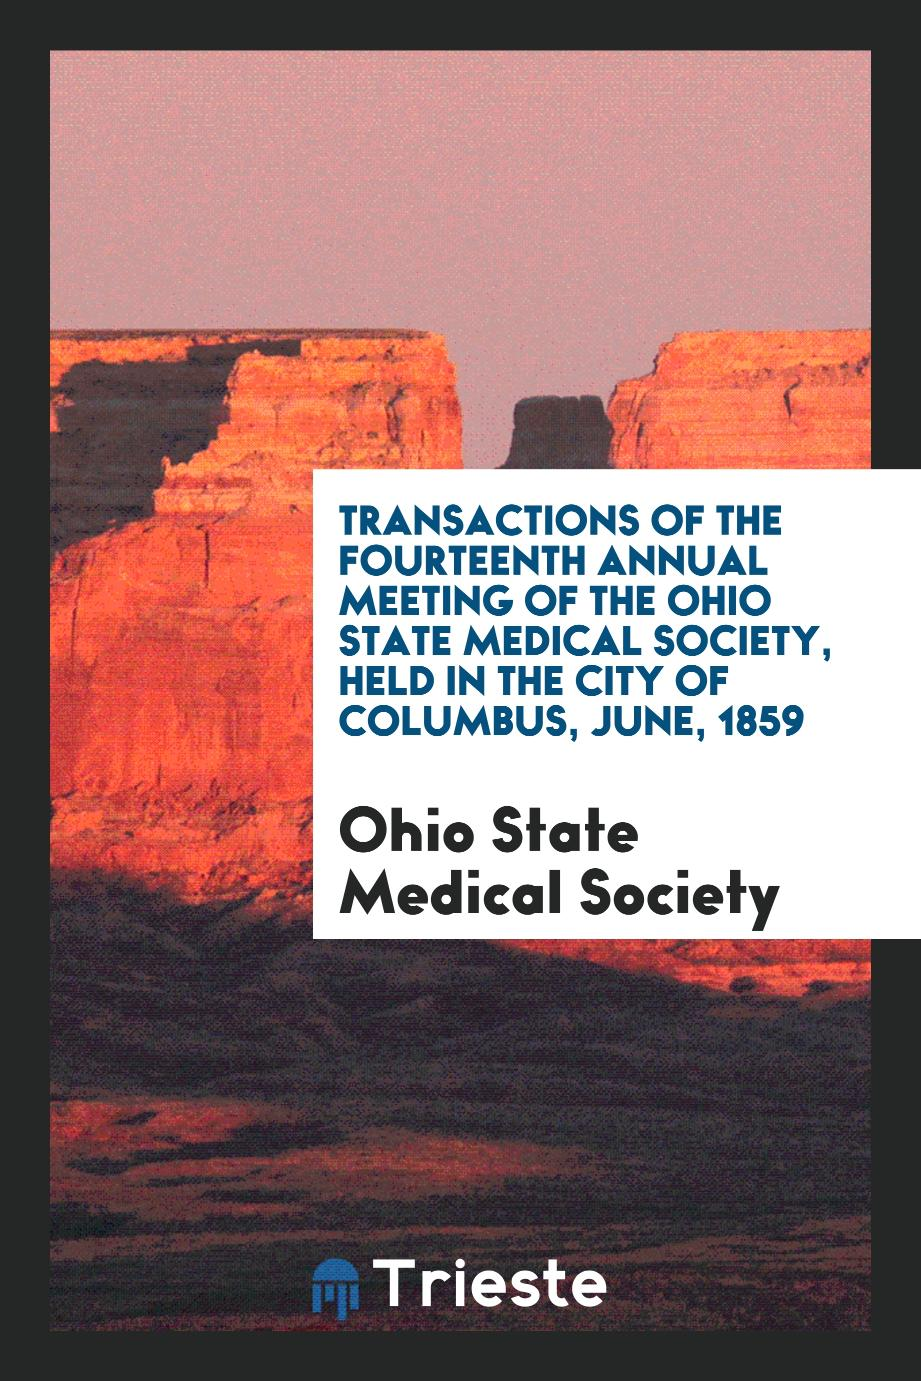 Transactions of the Fourteenth Annual Meeting of the Ohio State Medical Society, Held in the City of Columbus, June, 1859